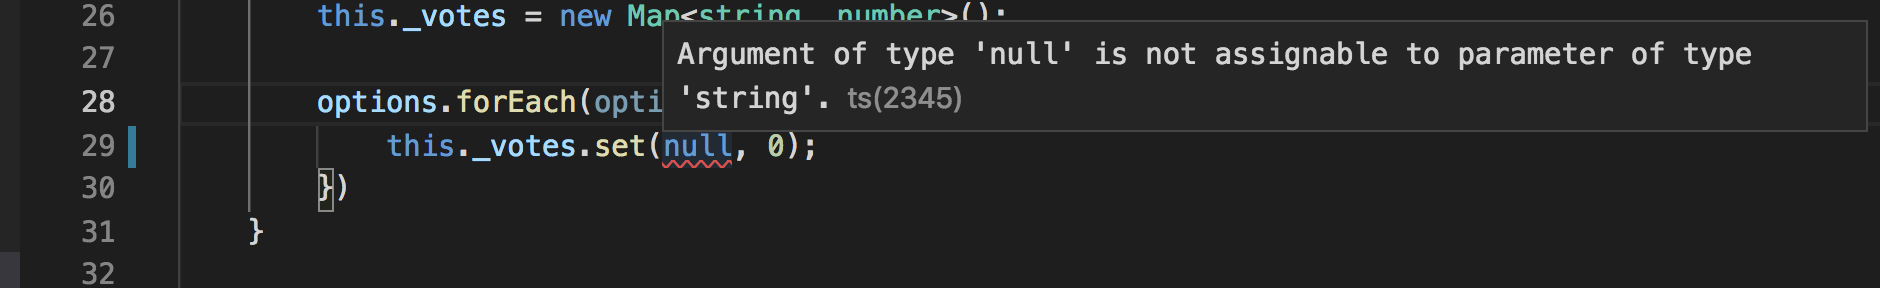 Visual Studio Code: unable to pass null or undefined as a parameter to a method which accepts a string